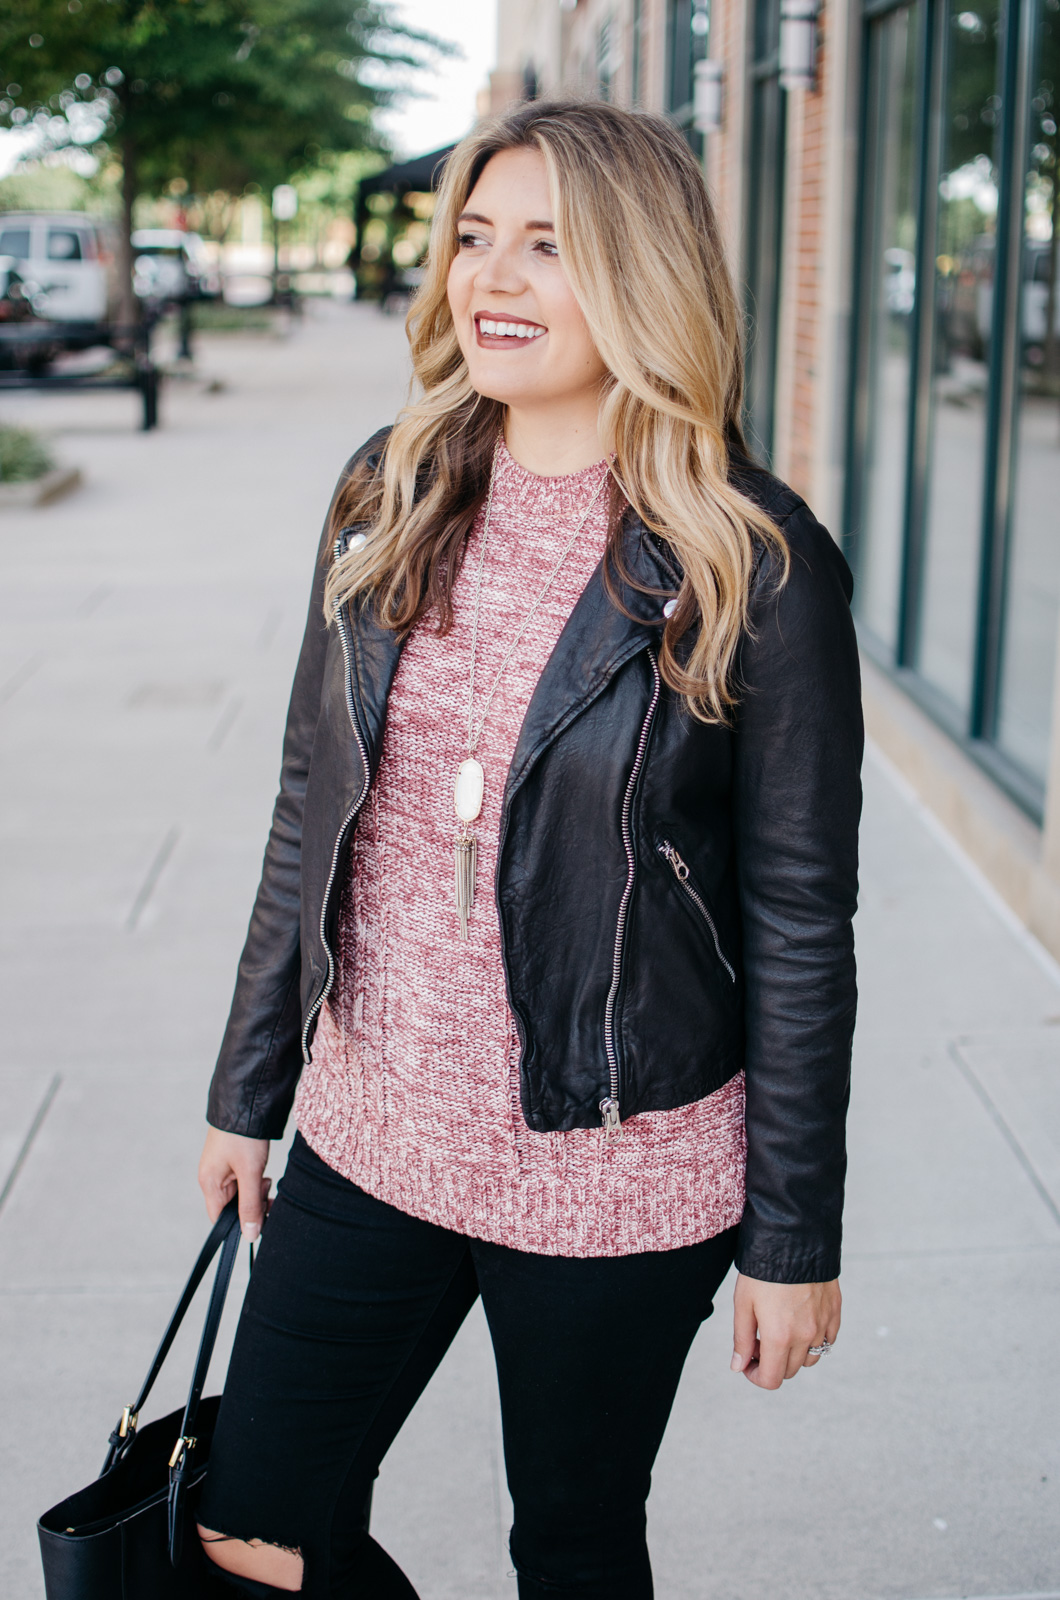 leather jacket sweater outfit idea - how wear a sleeveless turtleneck | For more Fall outfit ideas, click through to bylaurenm.com!